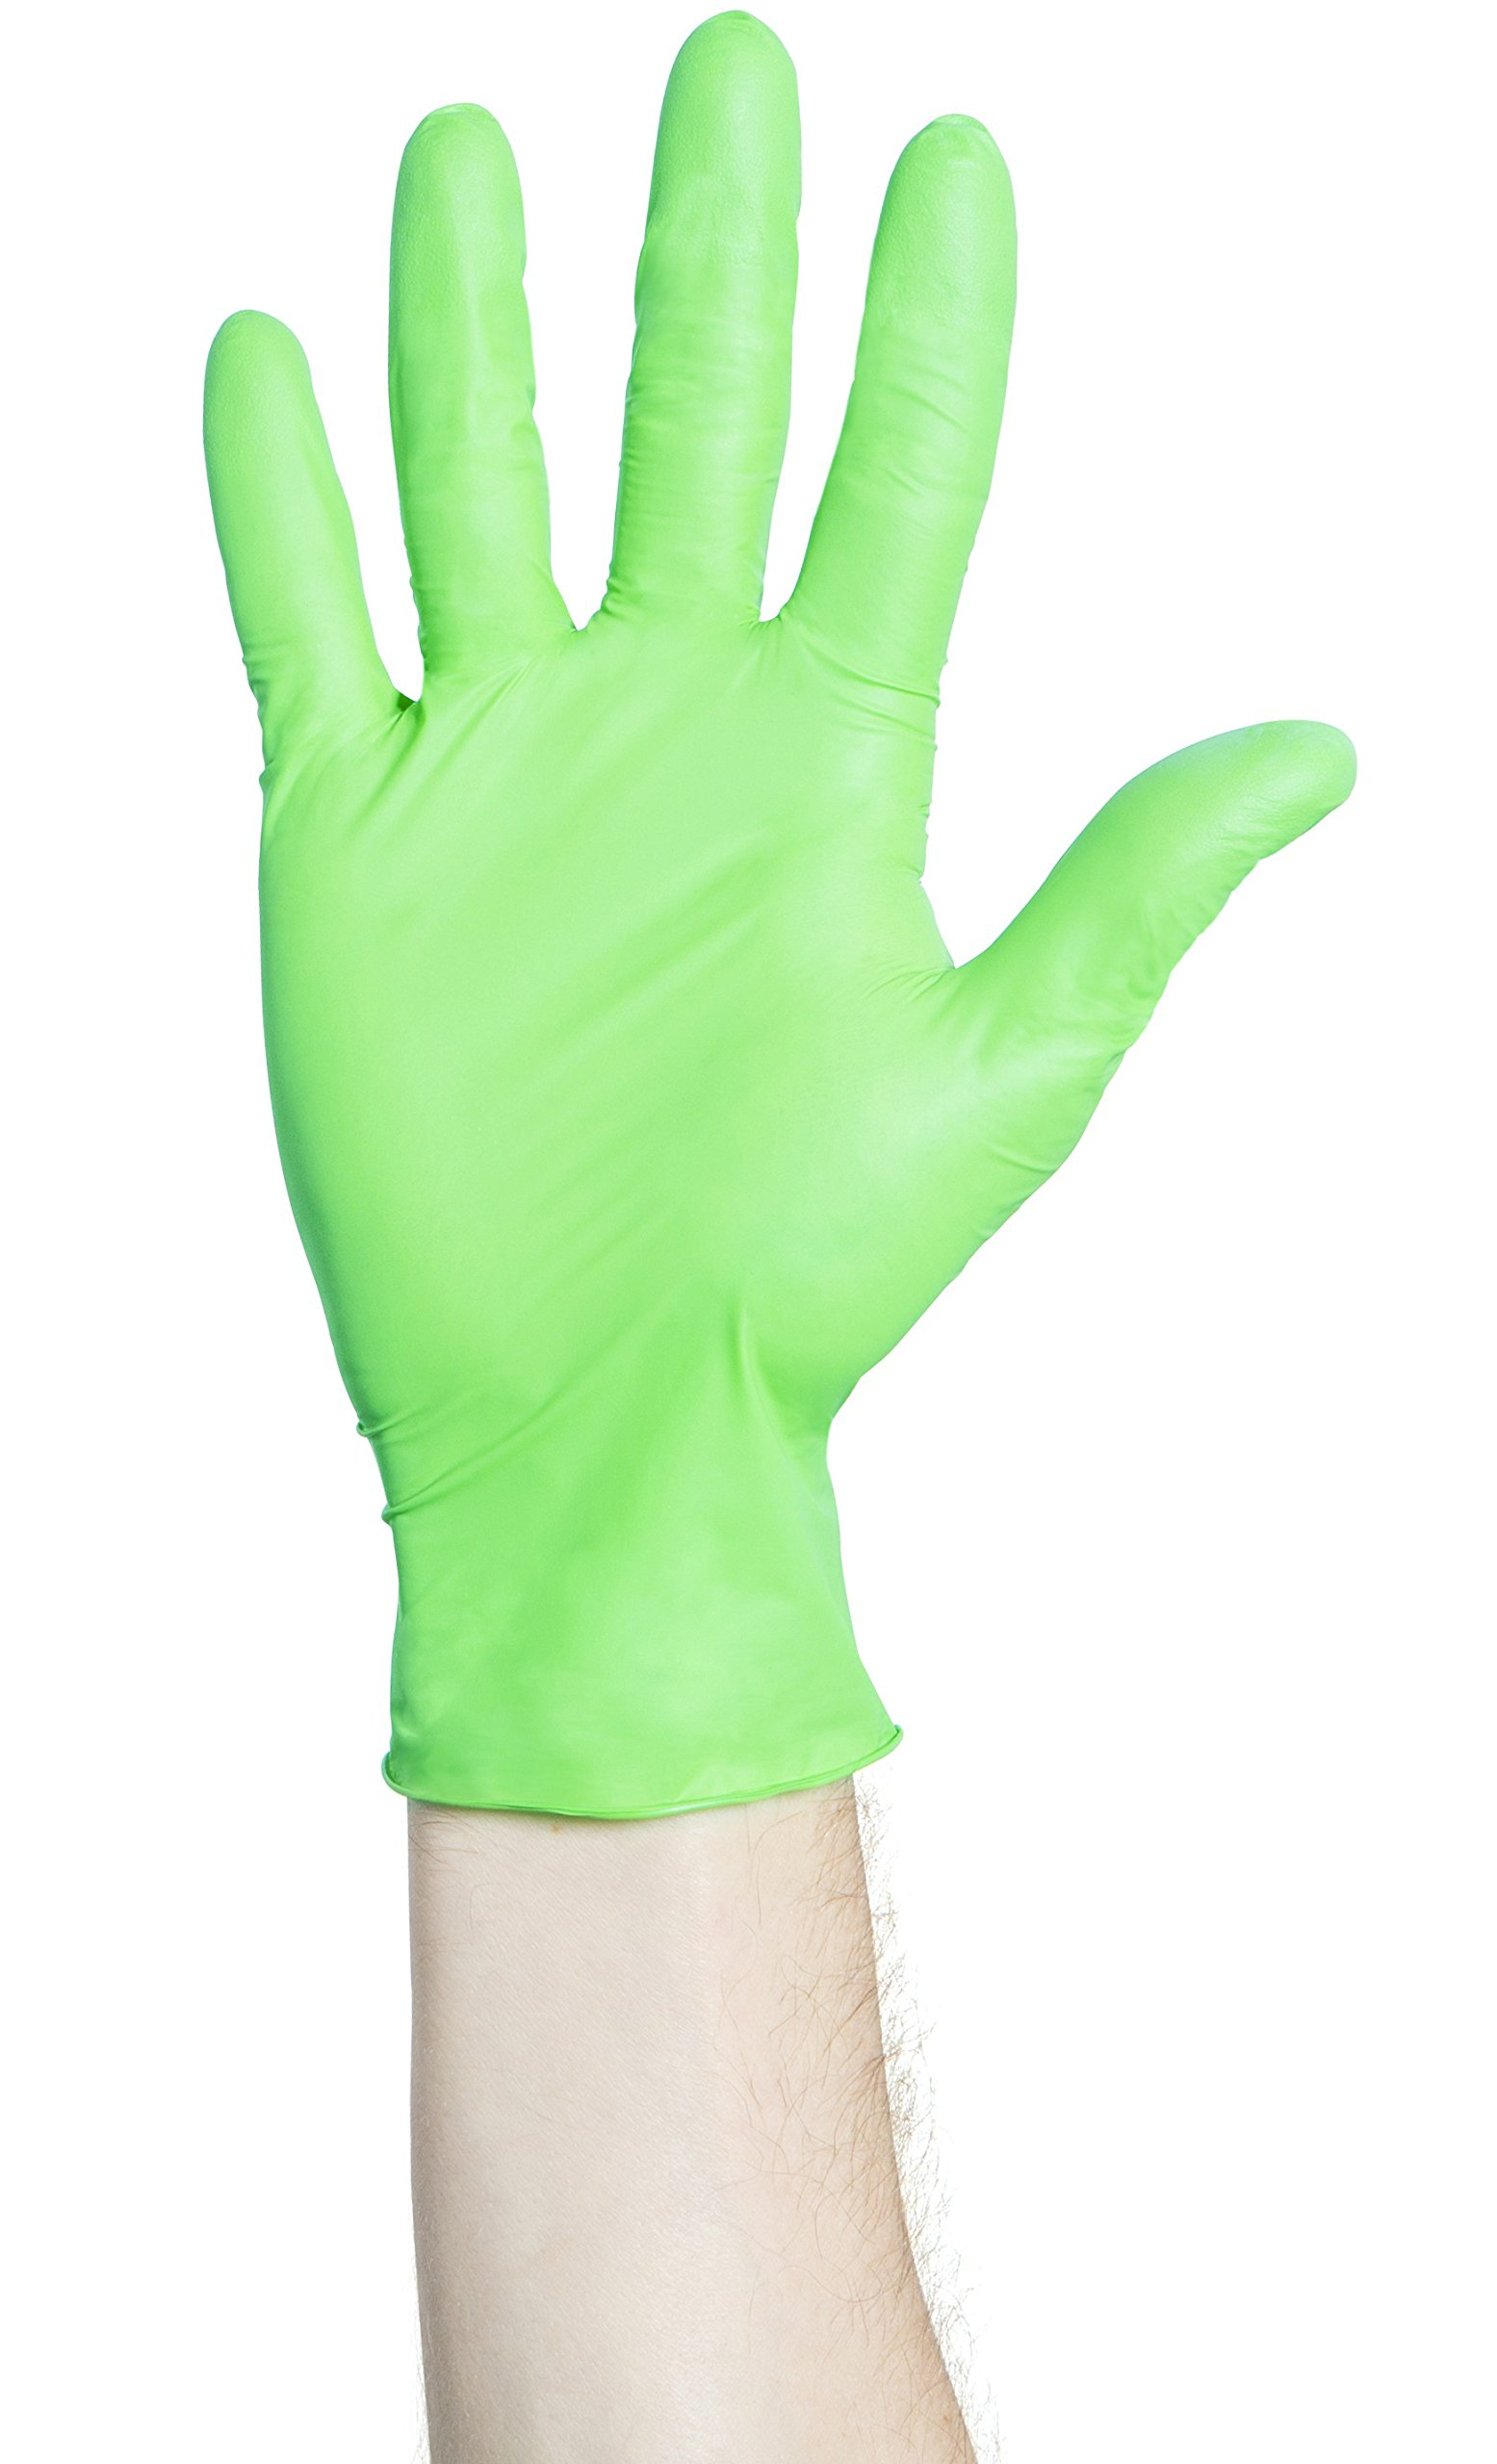 Halyard Health 44796 Chloroprene Gloves - Flexaprene Green - X-Large - 200/BX